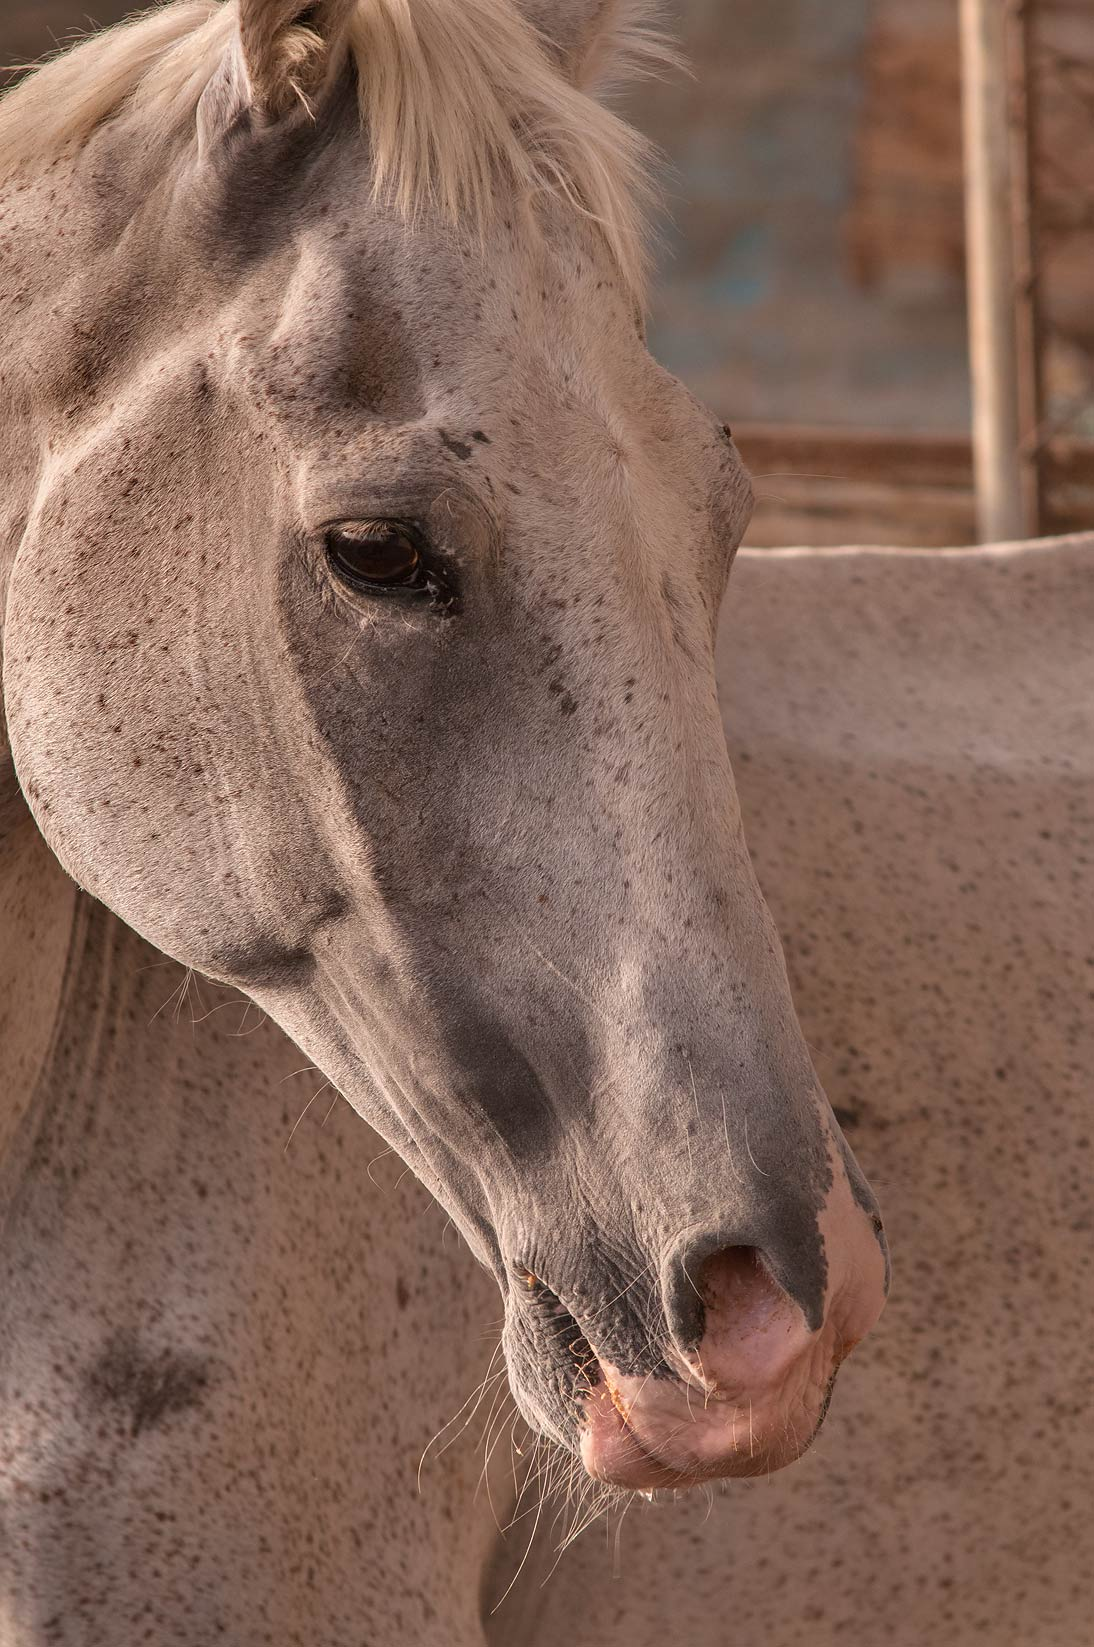 Horse in Livestocks Markets, Wholesale Markets area in Abu Hamour. Doha, Qatar